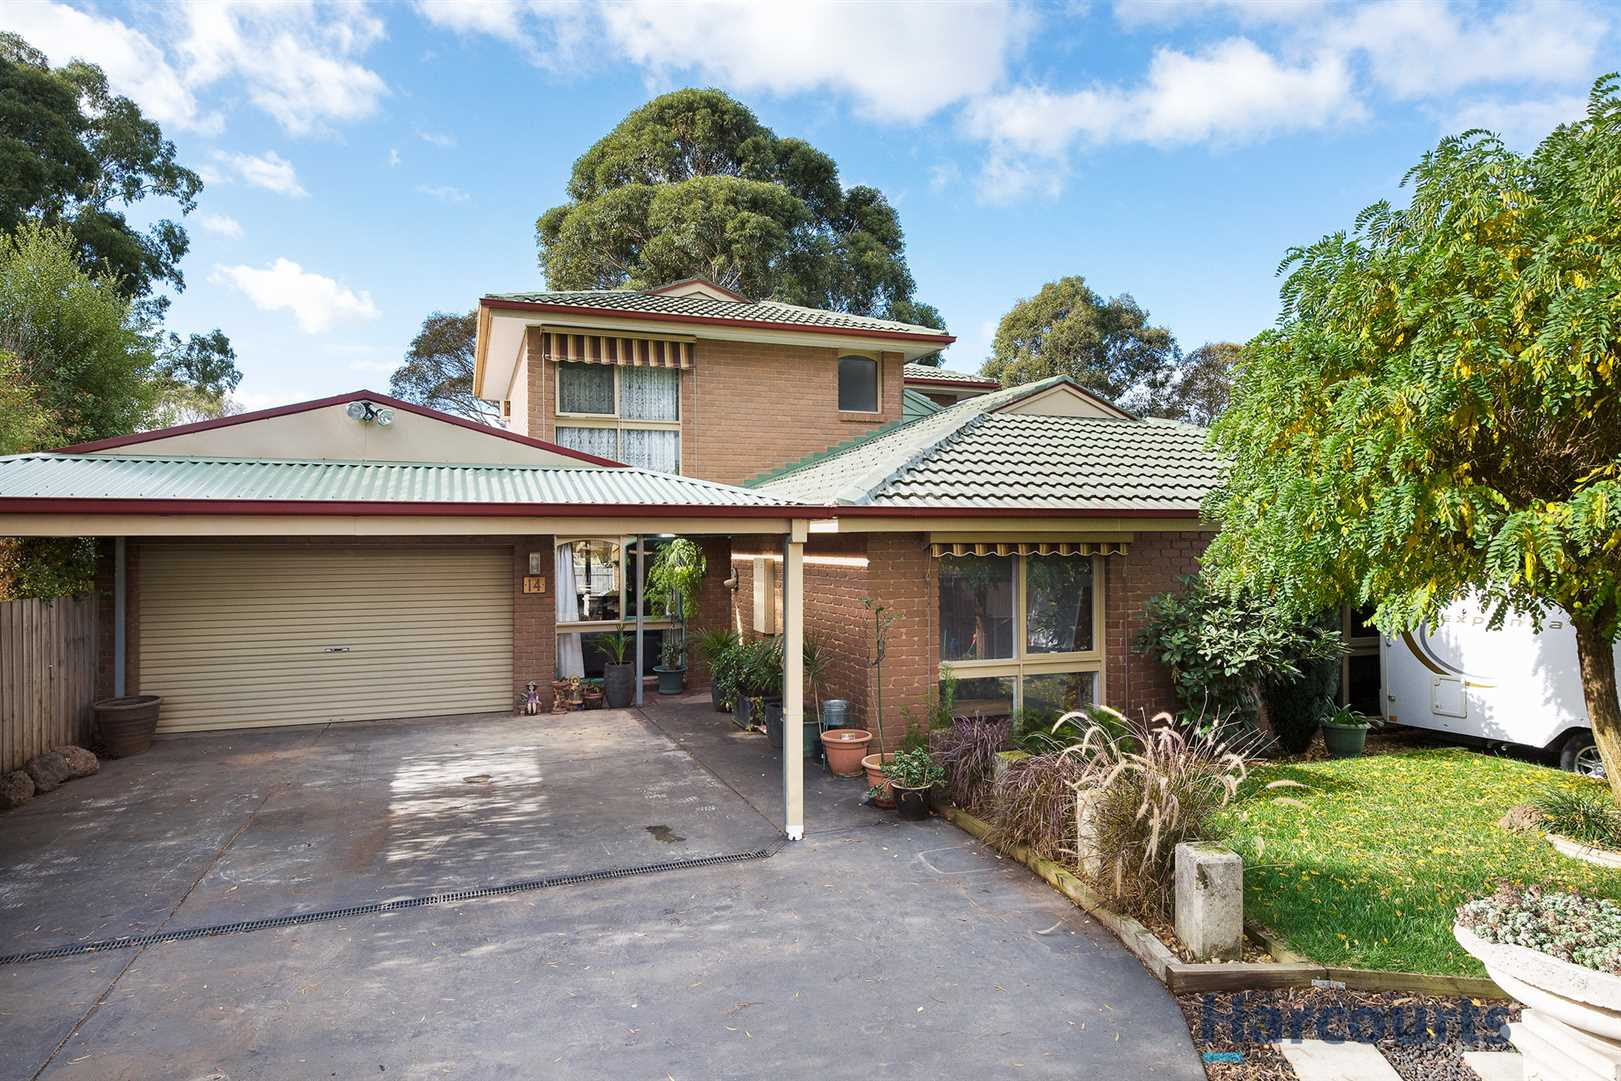 5 bedroom, warm, alluring, family home!